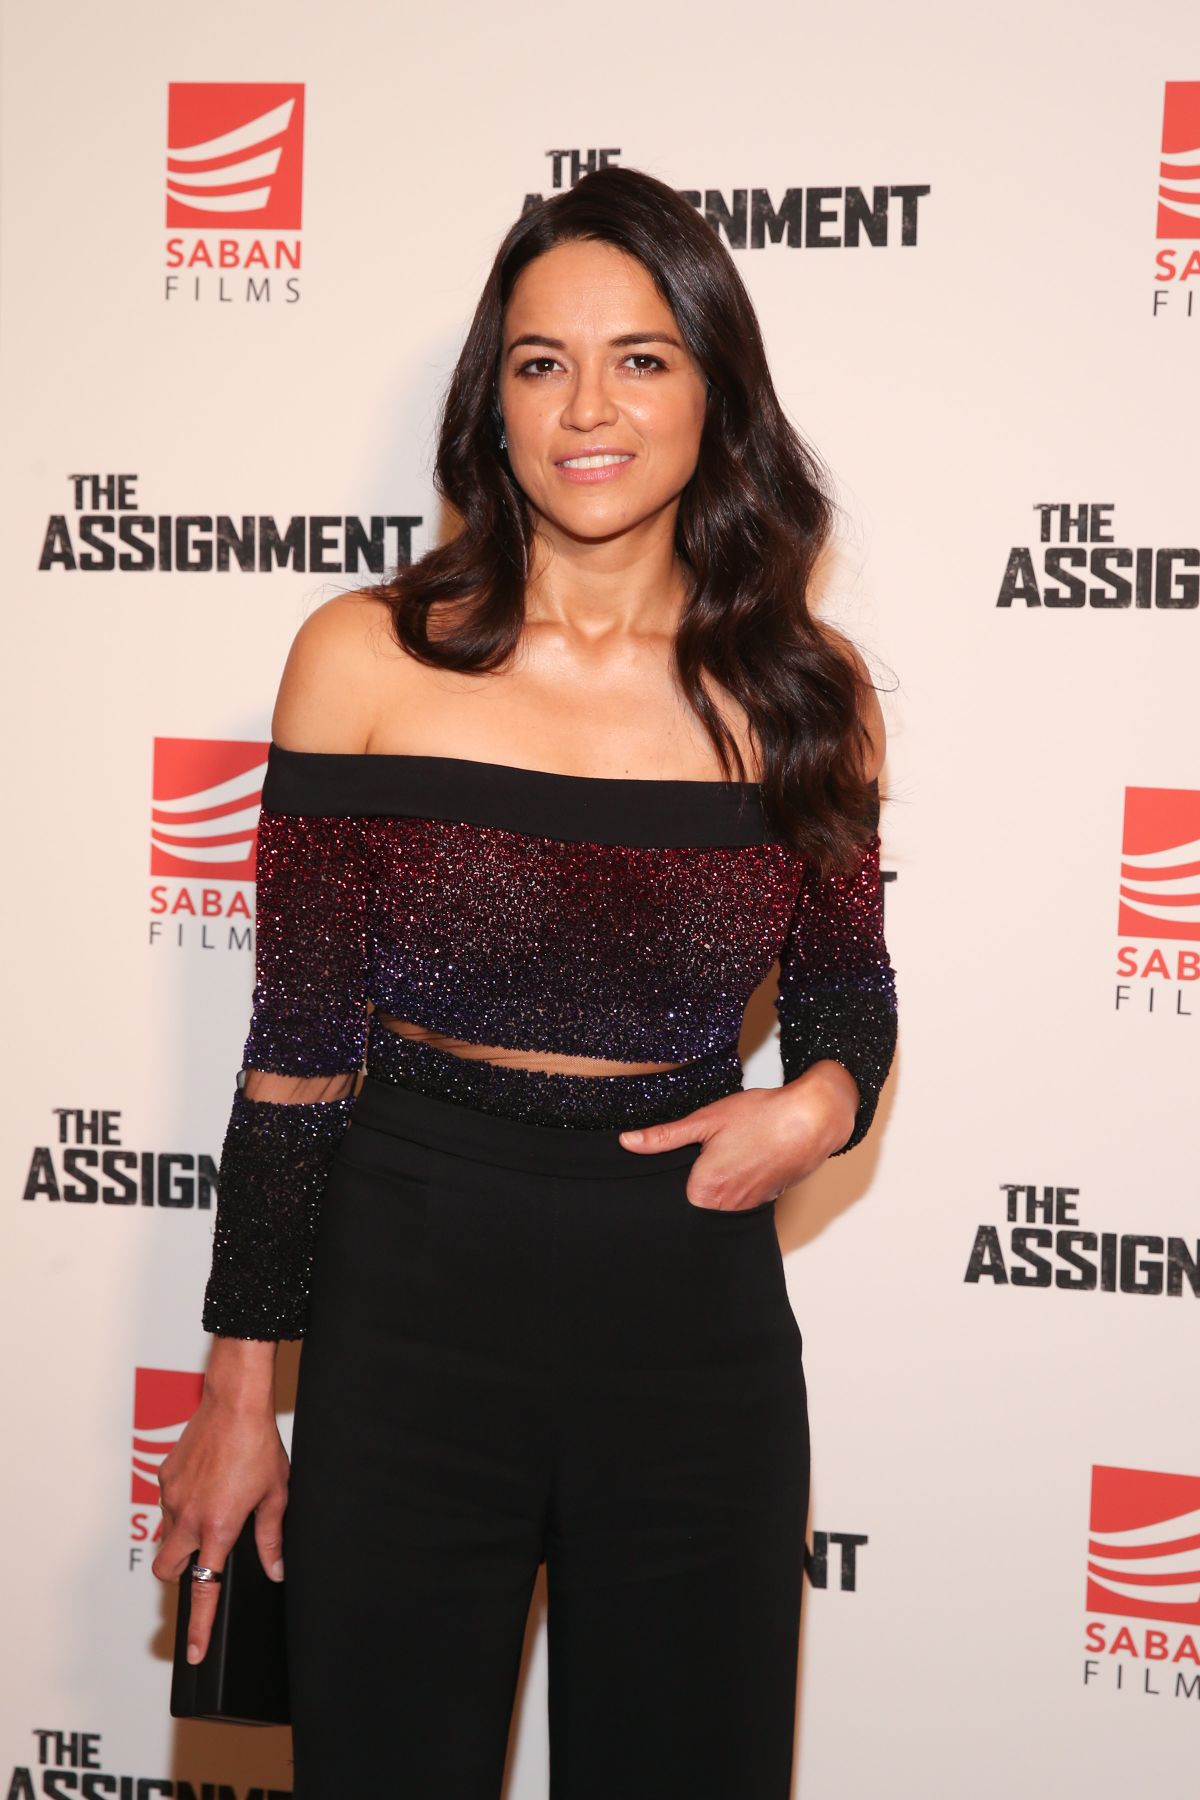 MICHELLE RODRIGUEZ at The Assignment Screening in New York 04/03/2017